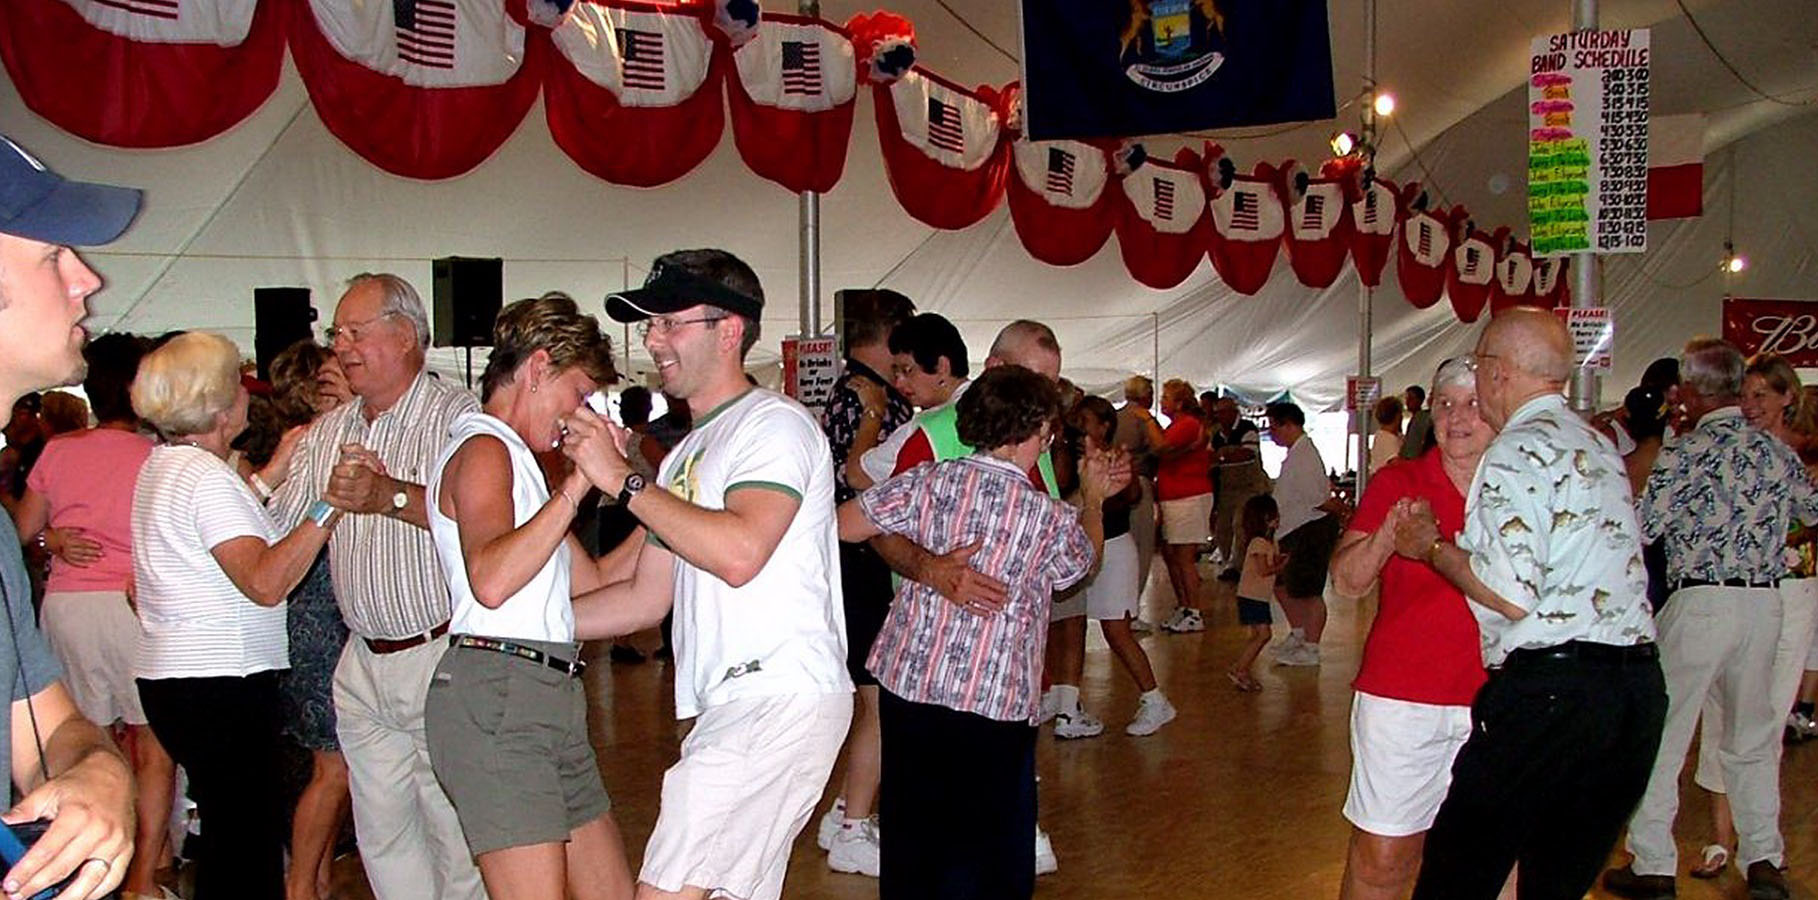 Public Dancing at Cedar Polka Fest